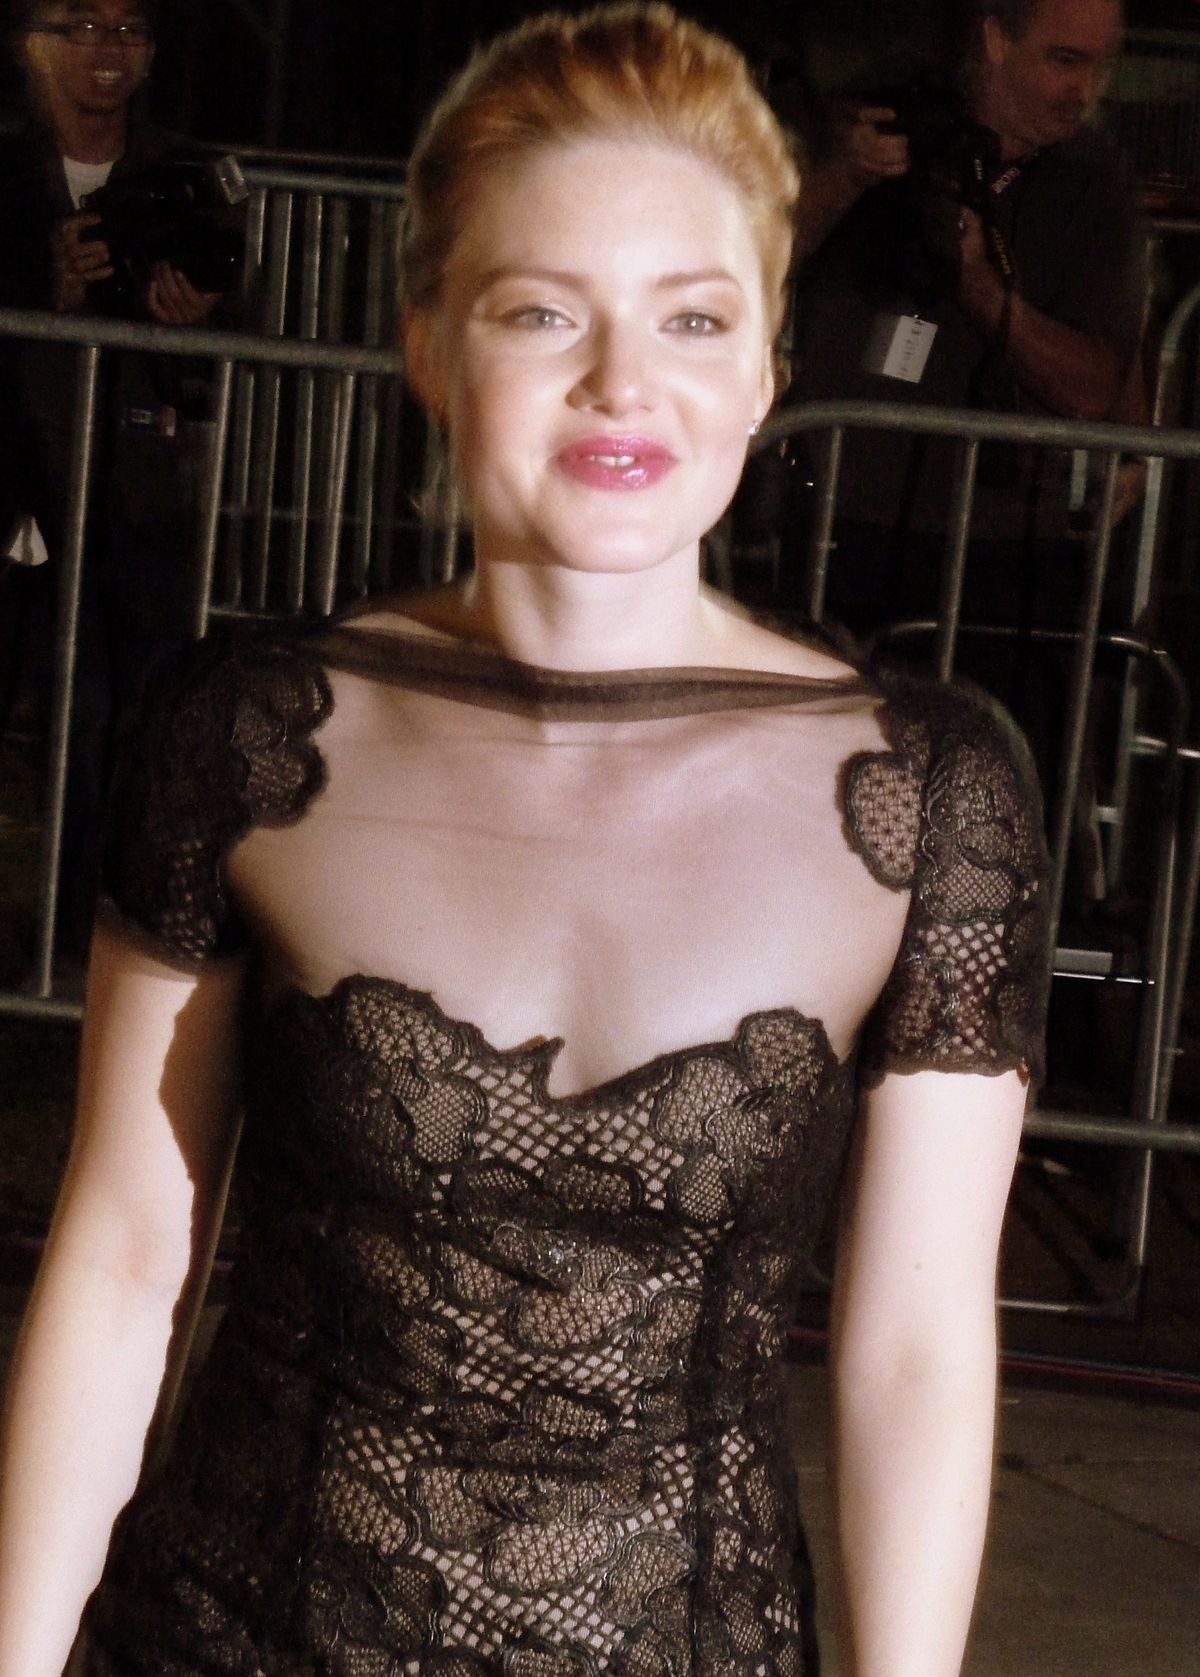 Holliday Grainger nudes (97 photo), Is a cute Erotica, Snapchat, see through 2016